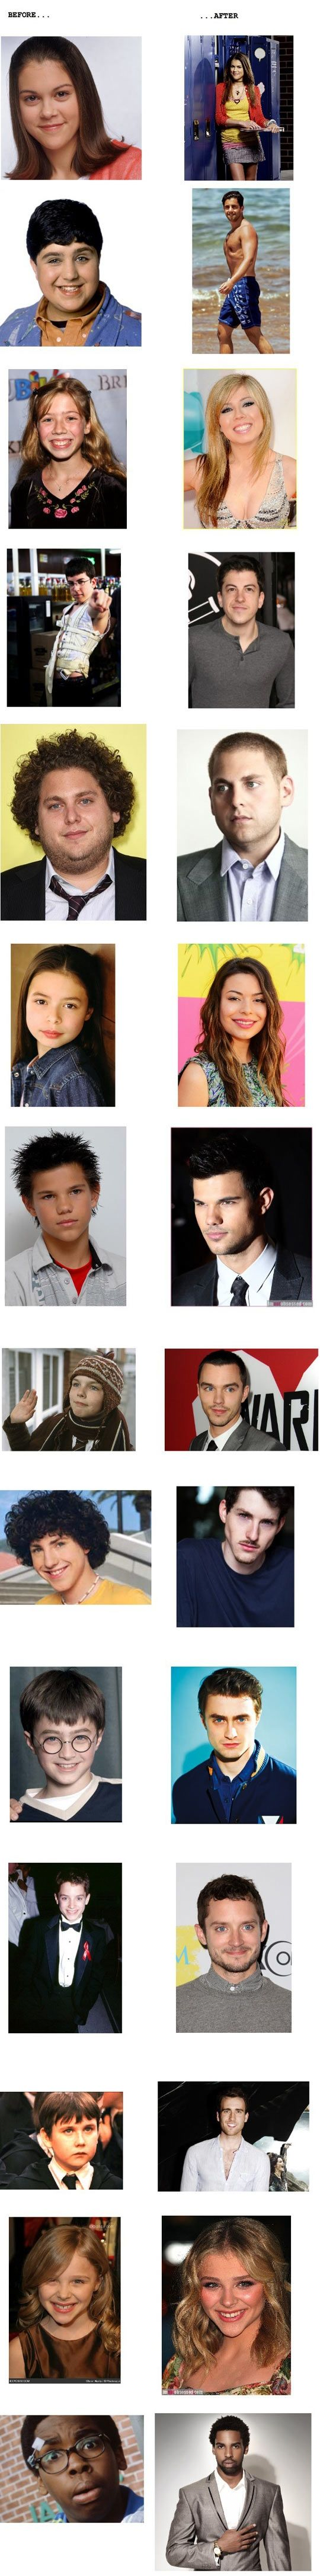 Never underestimate puberty.: